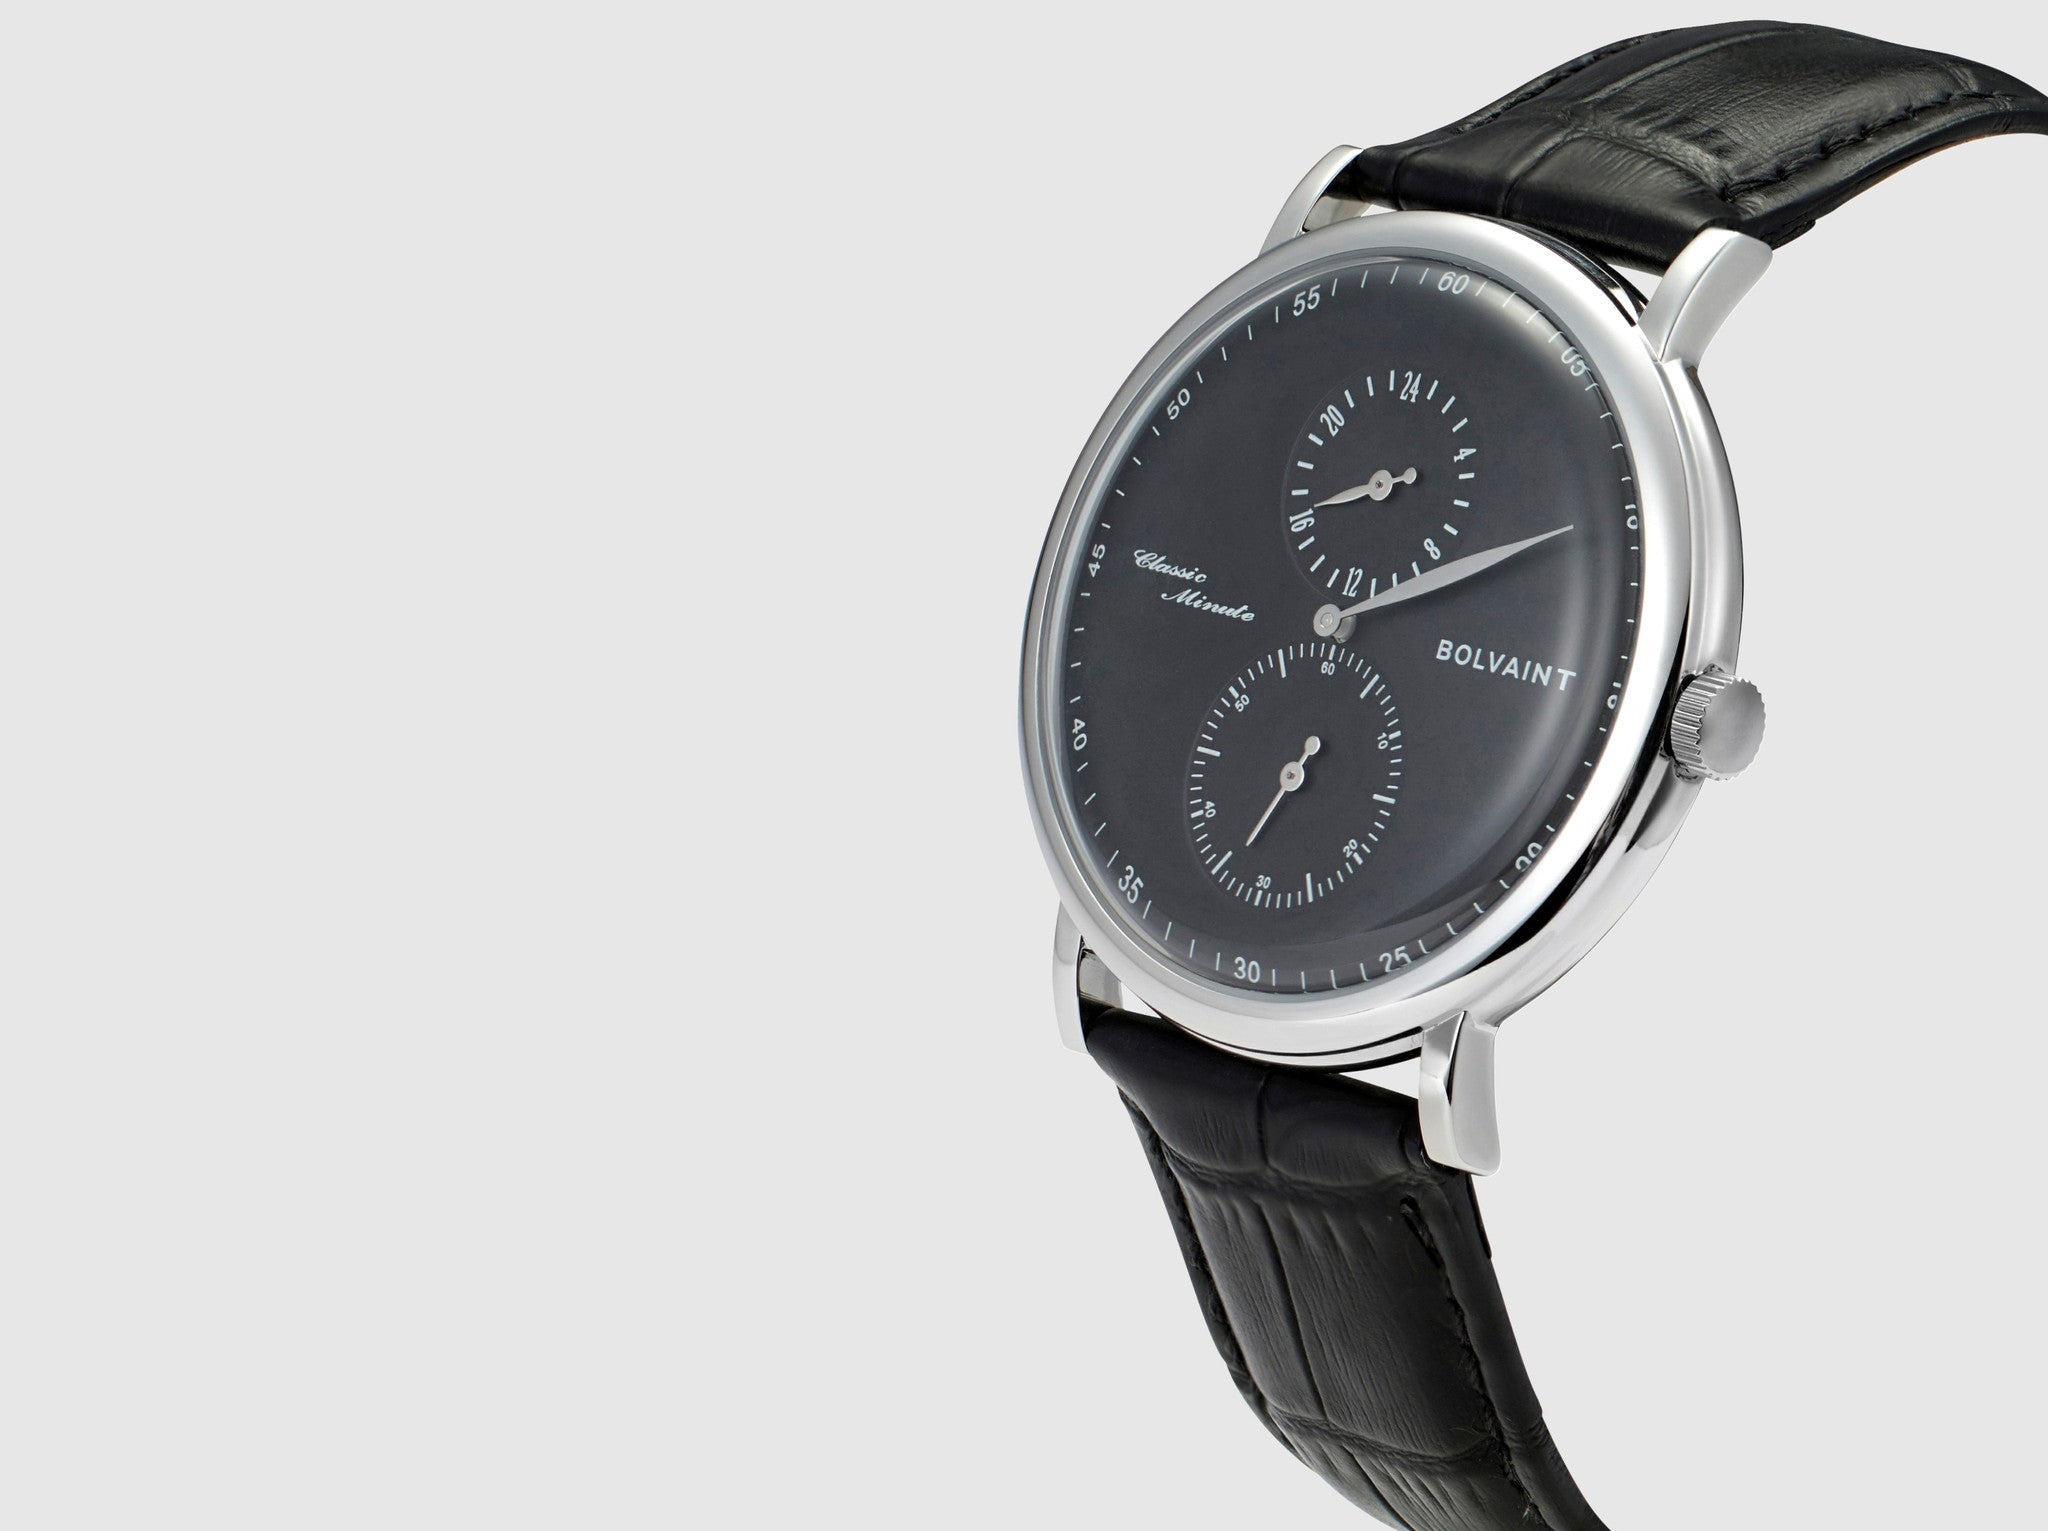 The Bolvaint Eanes Classic Minute in Black